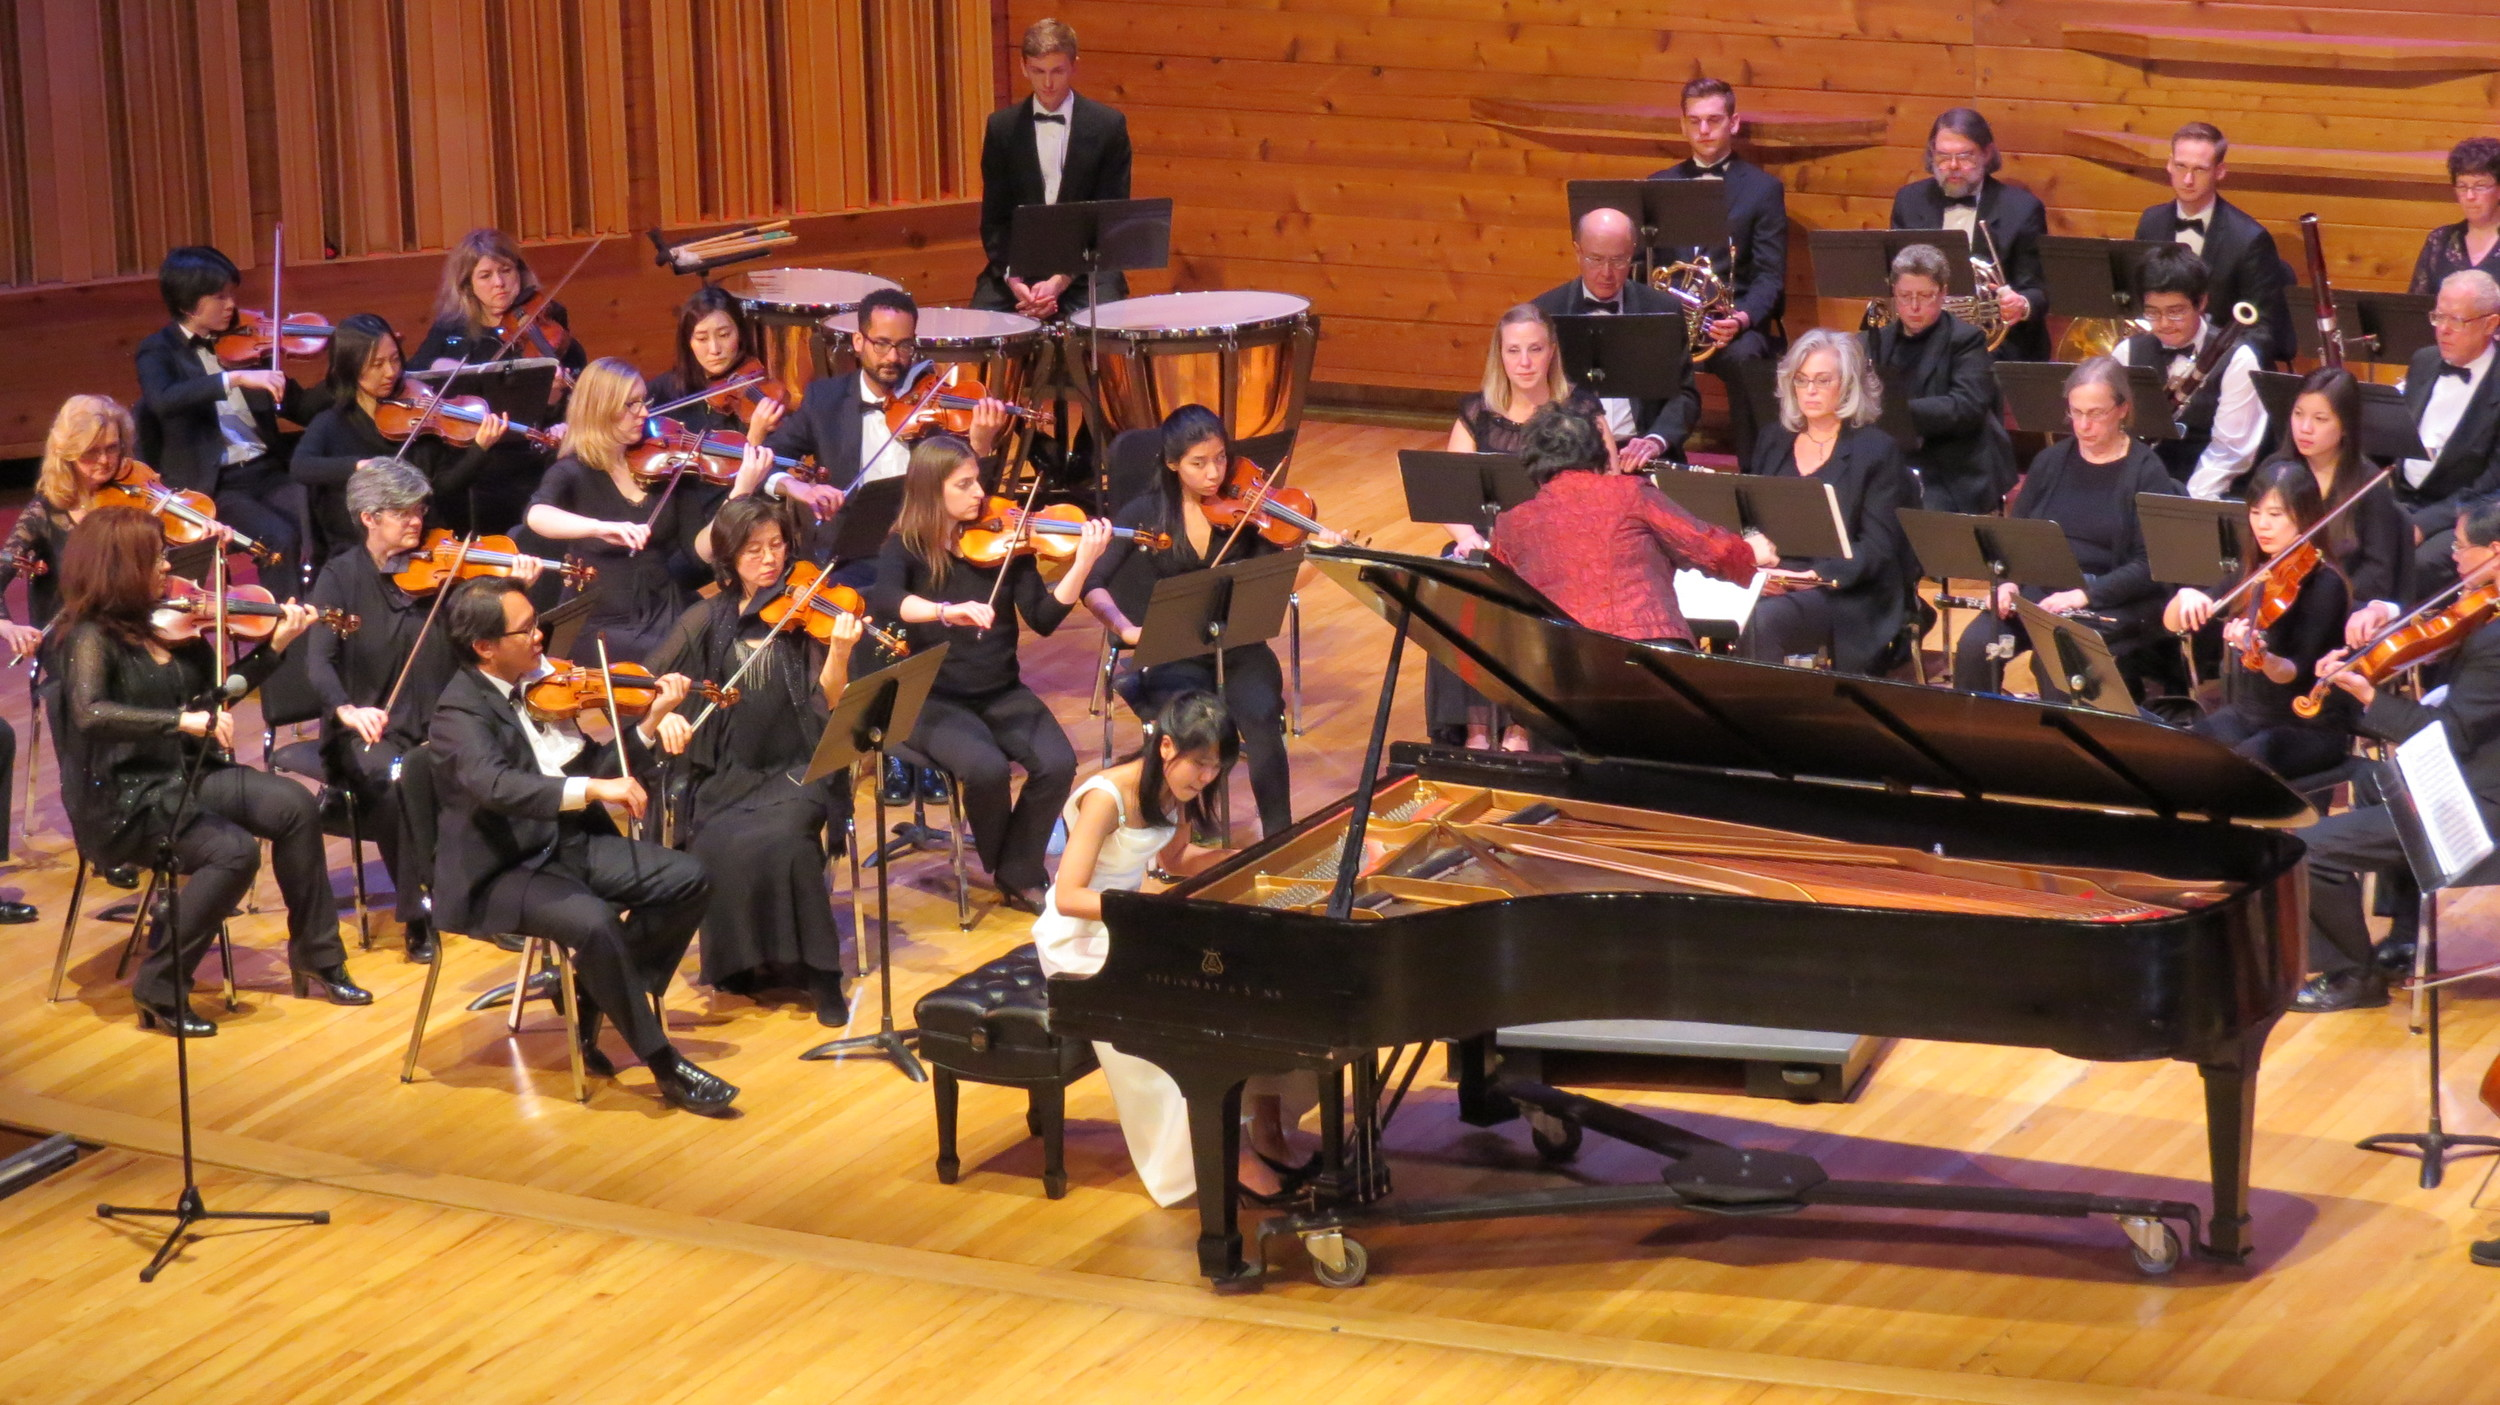 A wonderful collaboration between pianist Kate Liu and the orchestra